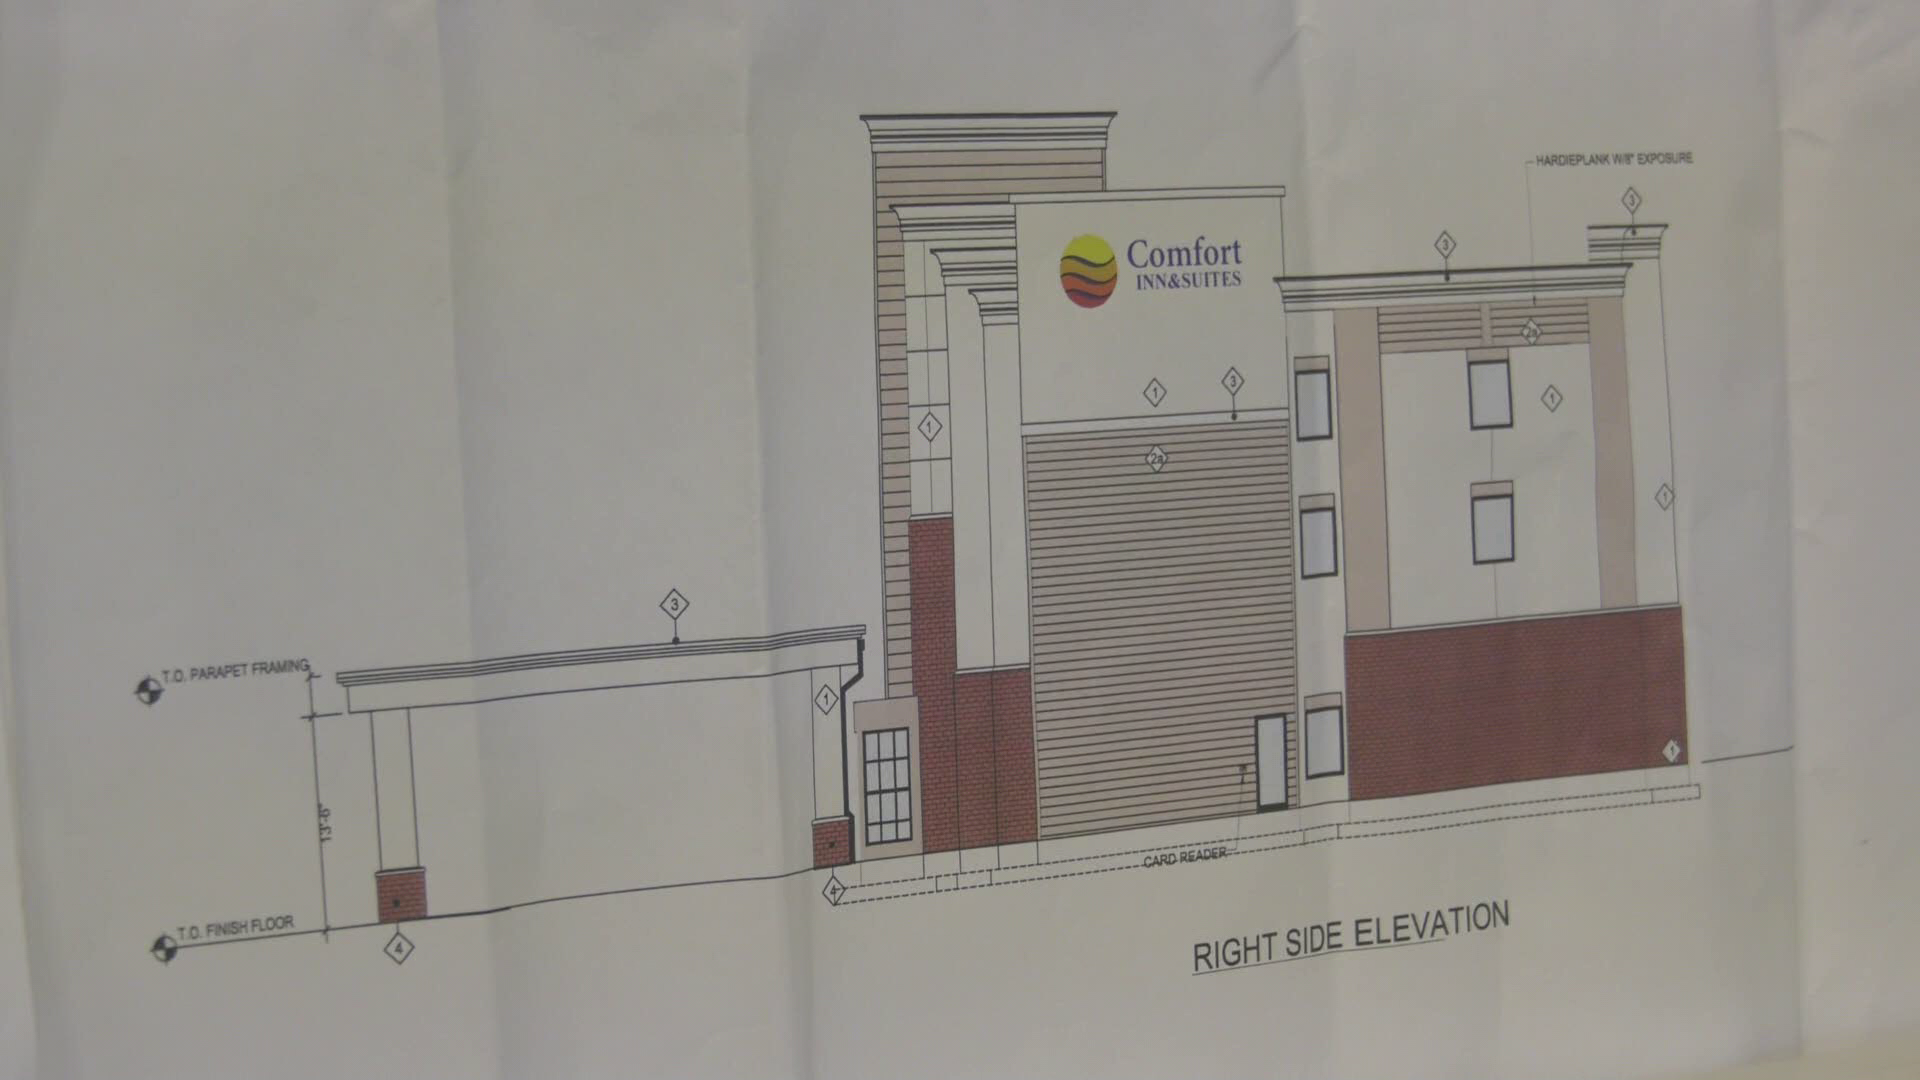 One of the designs for potential construction.